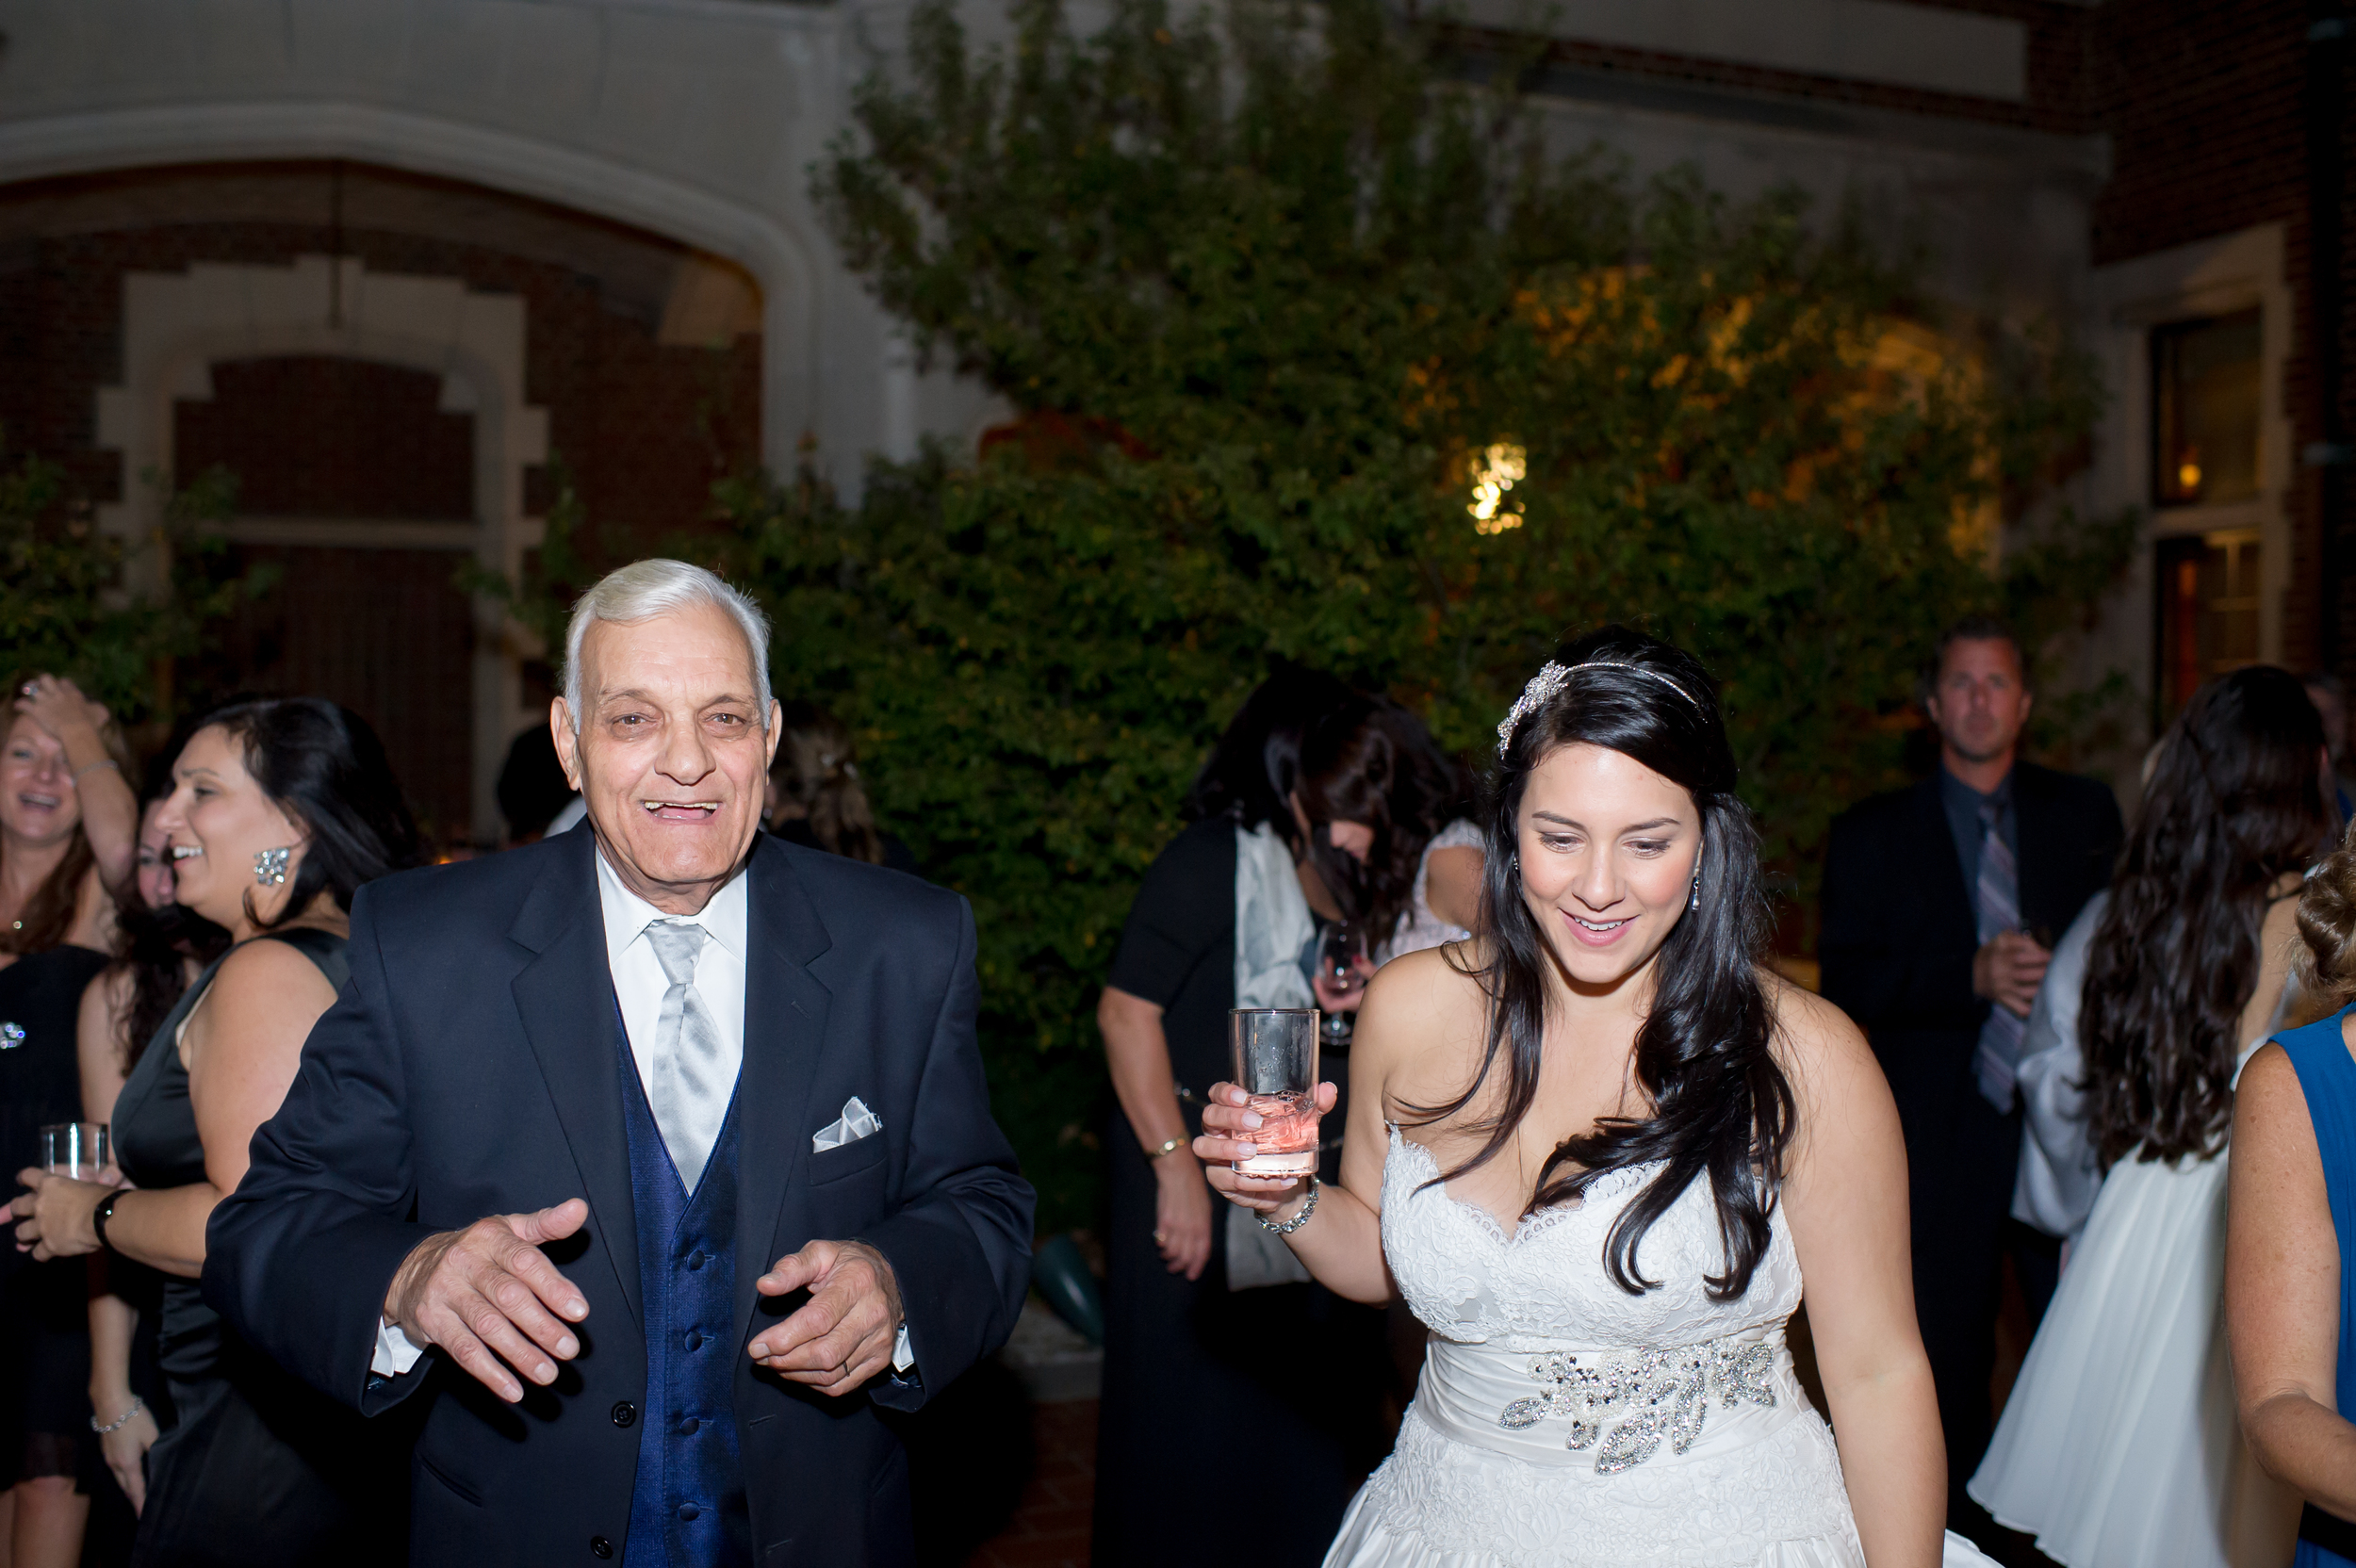 waveny_house_wedding_New_canaan_CT_Amy_Champagne_Events1136.jpg